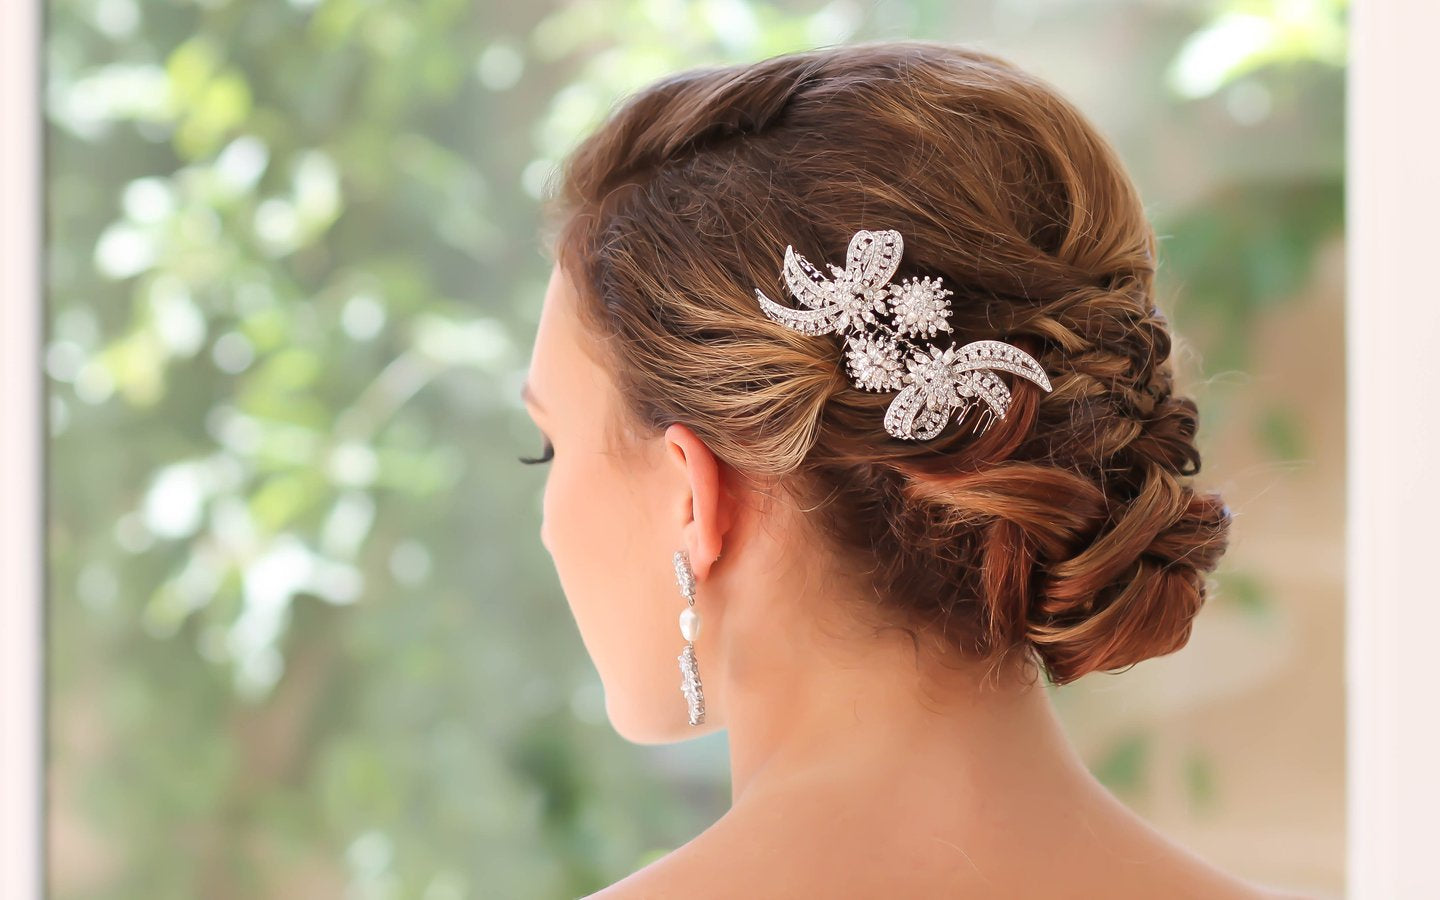 Bridal headpiece - Bride Glamor